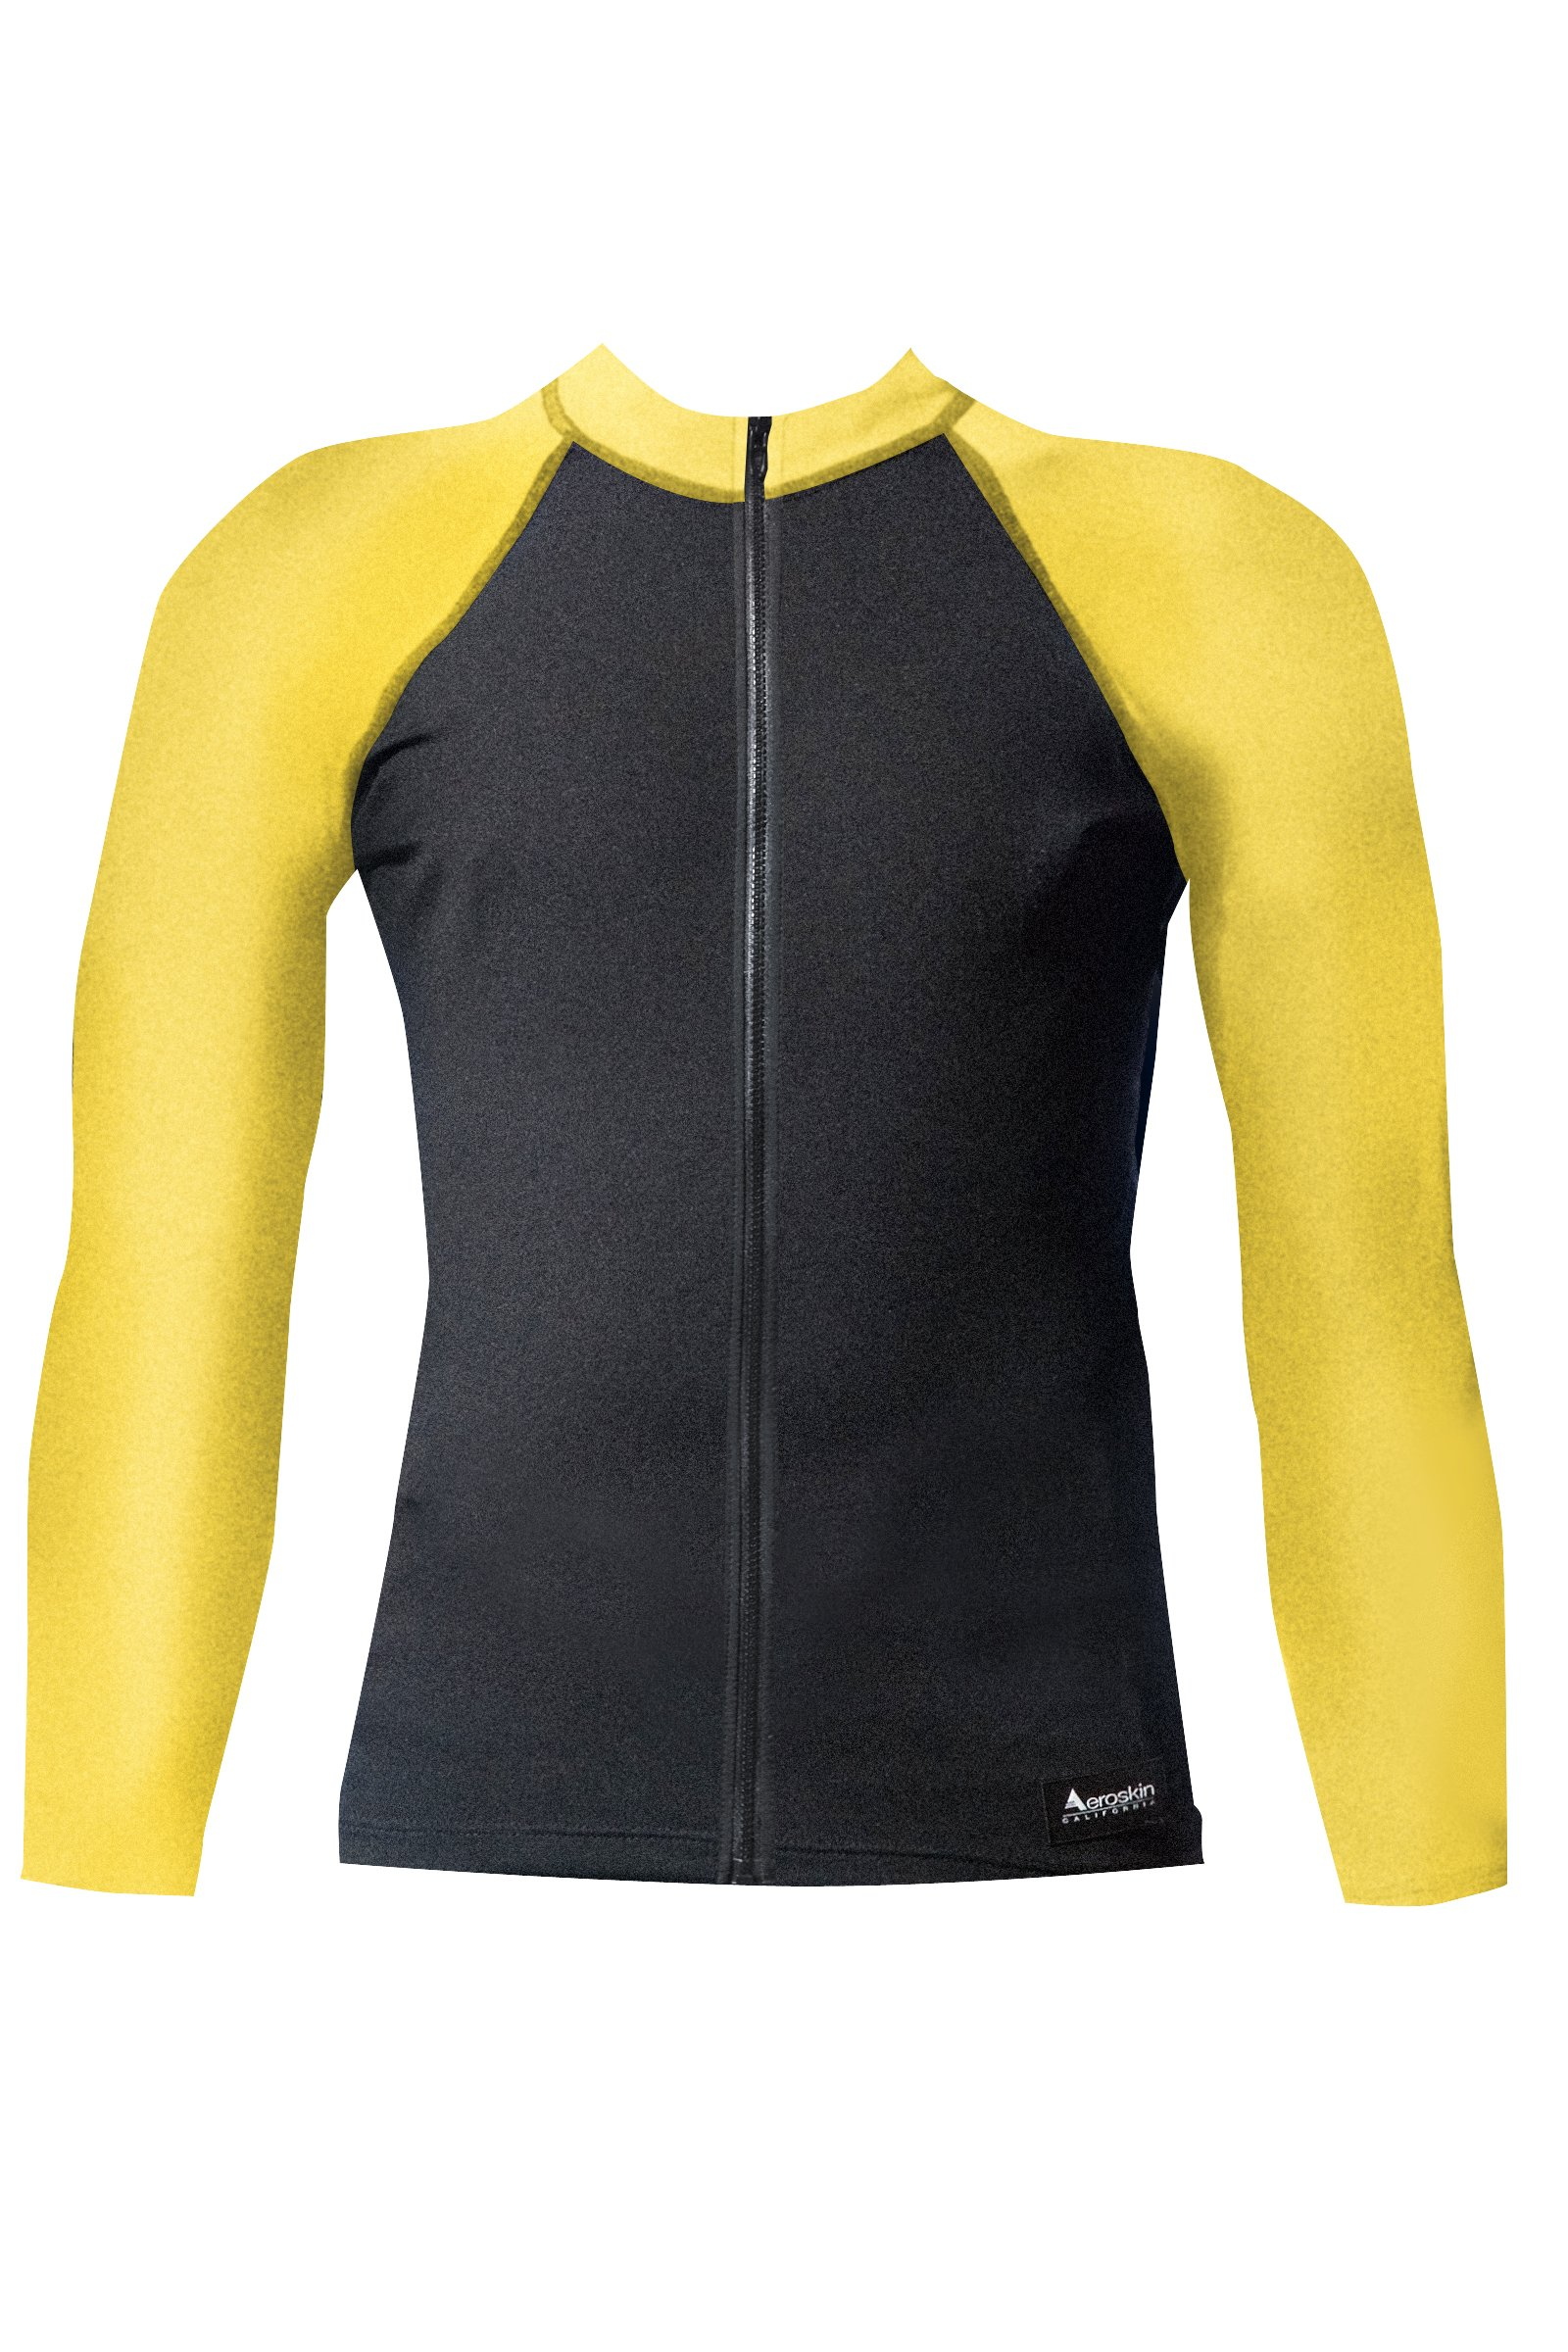 Aeroskin Raglan Long Sleeve Shirt with Color Accents, Fuzzy Collar and Front Zip (Black/Yellow, X-Small)